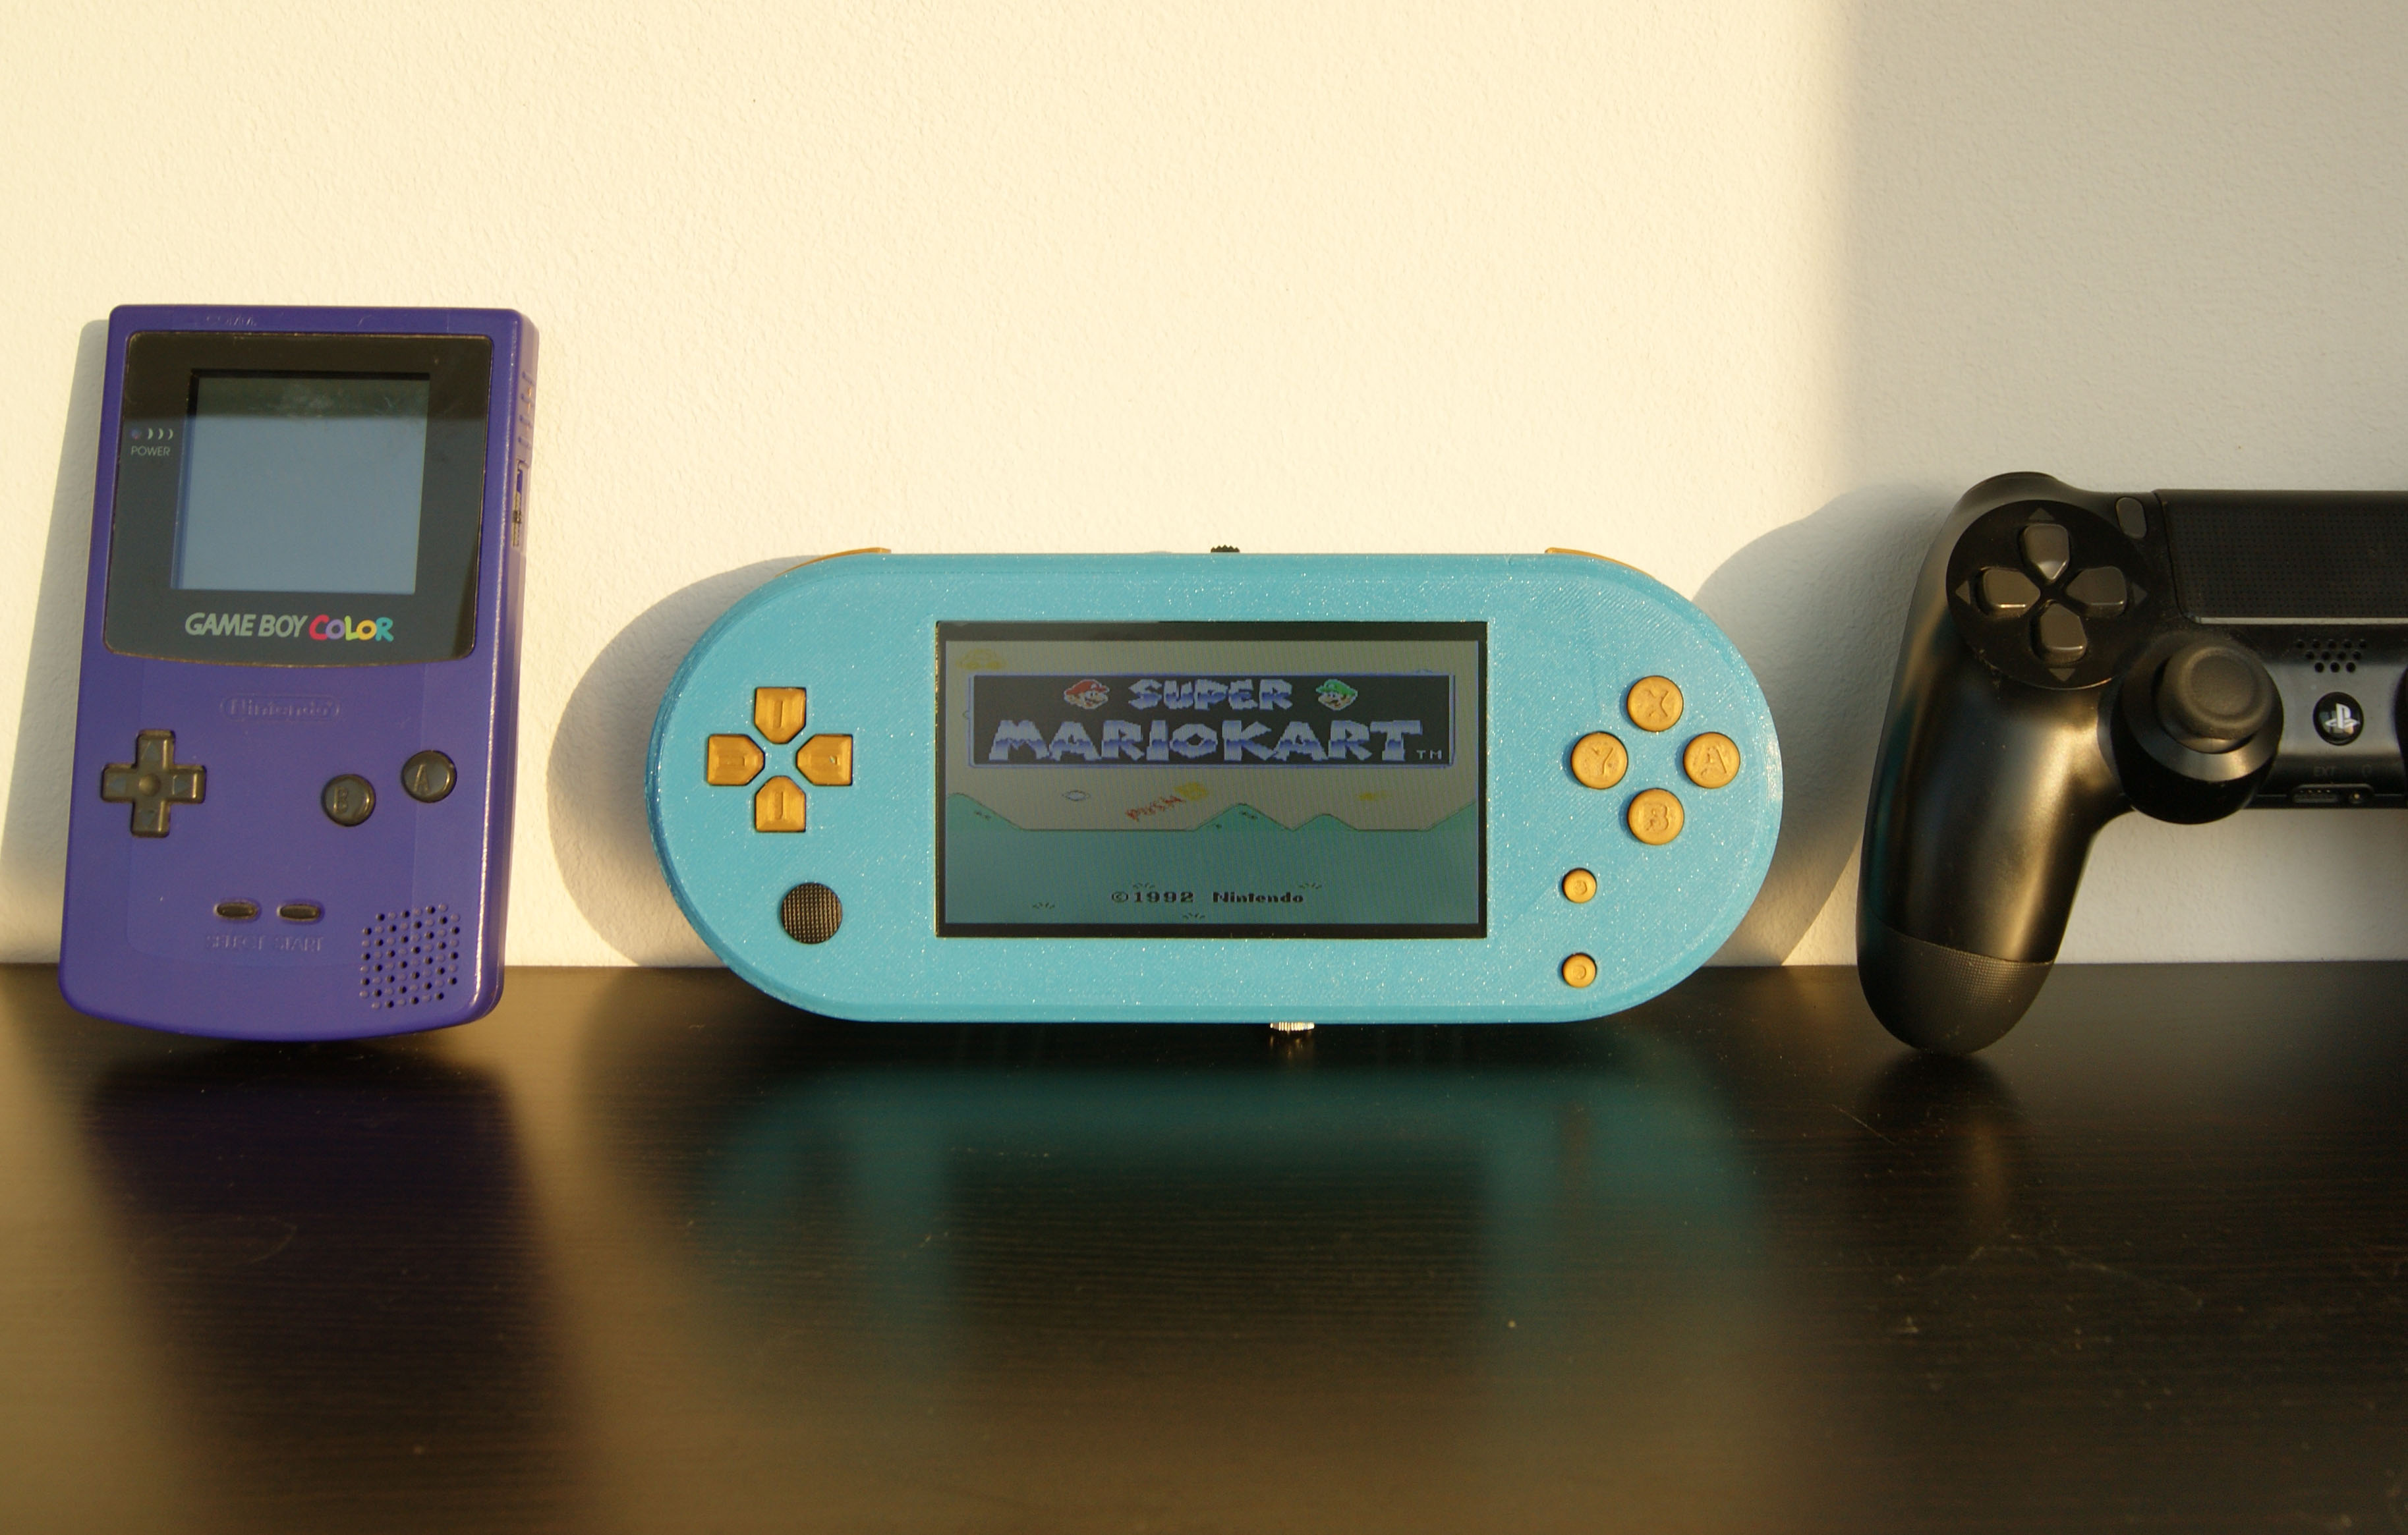 Picture of GamePi Zero - the Favorable Emulation Station